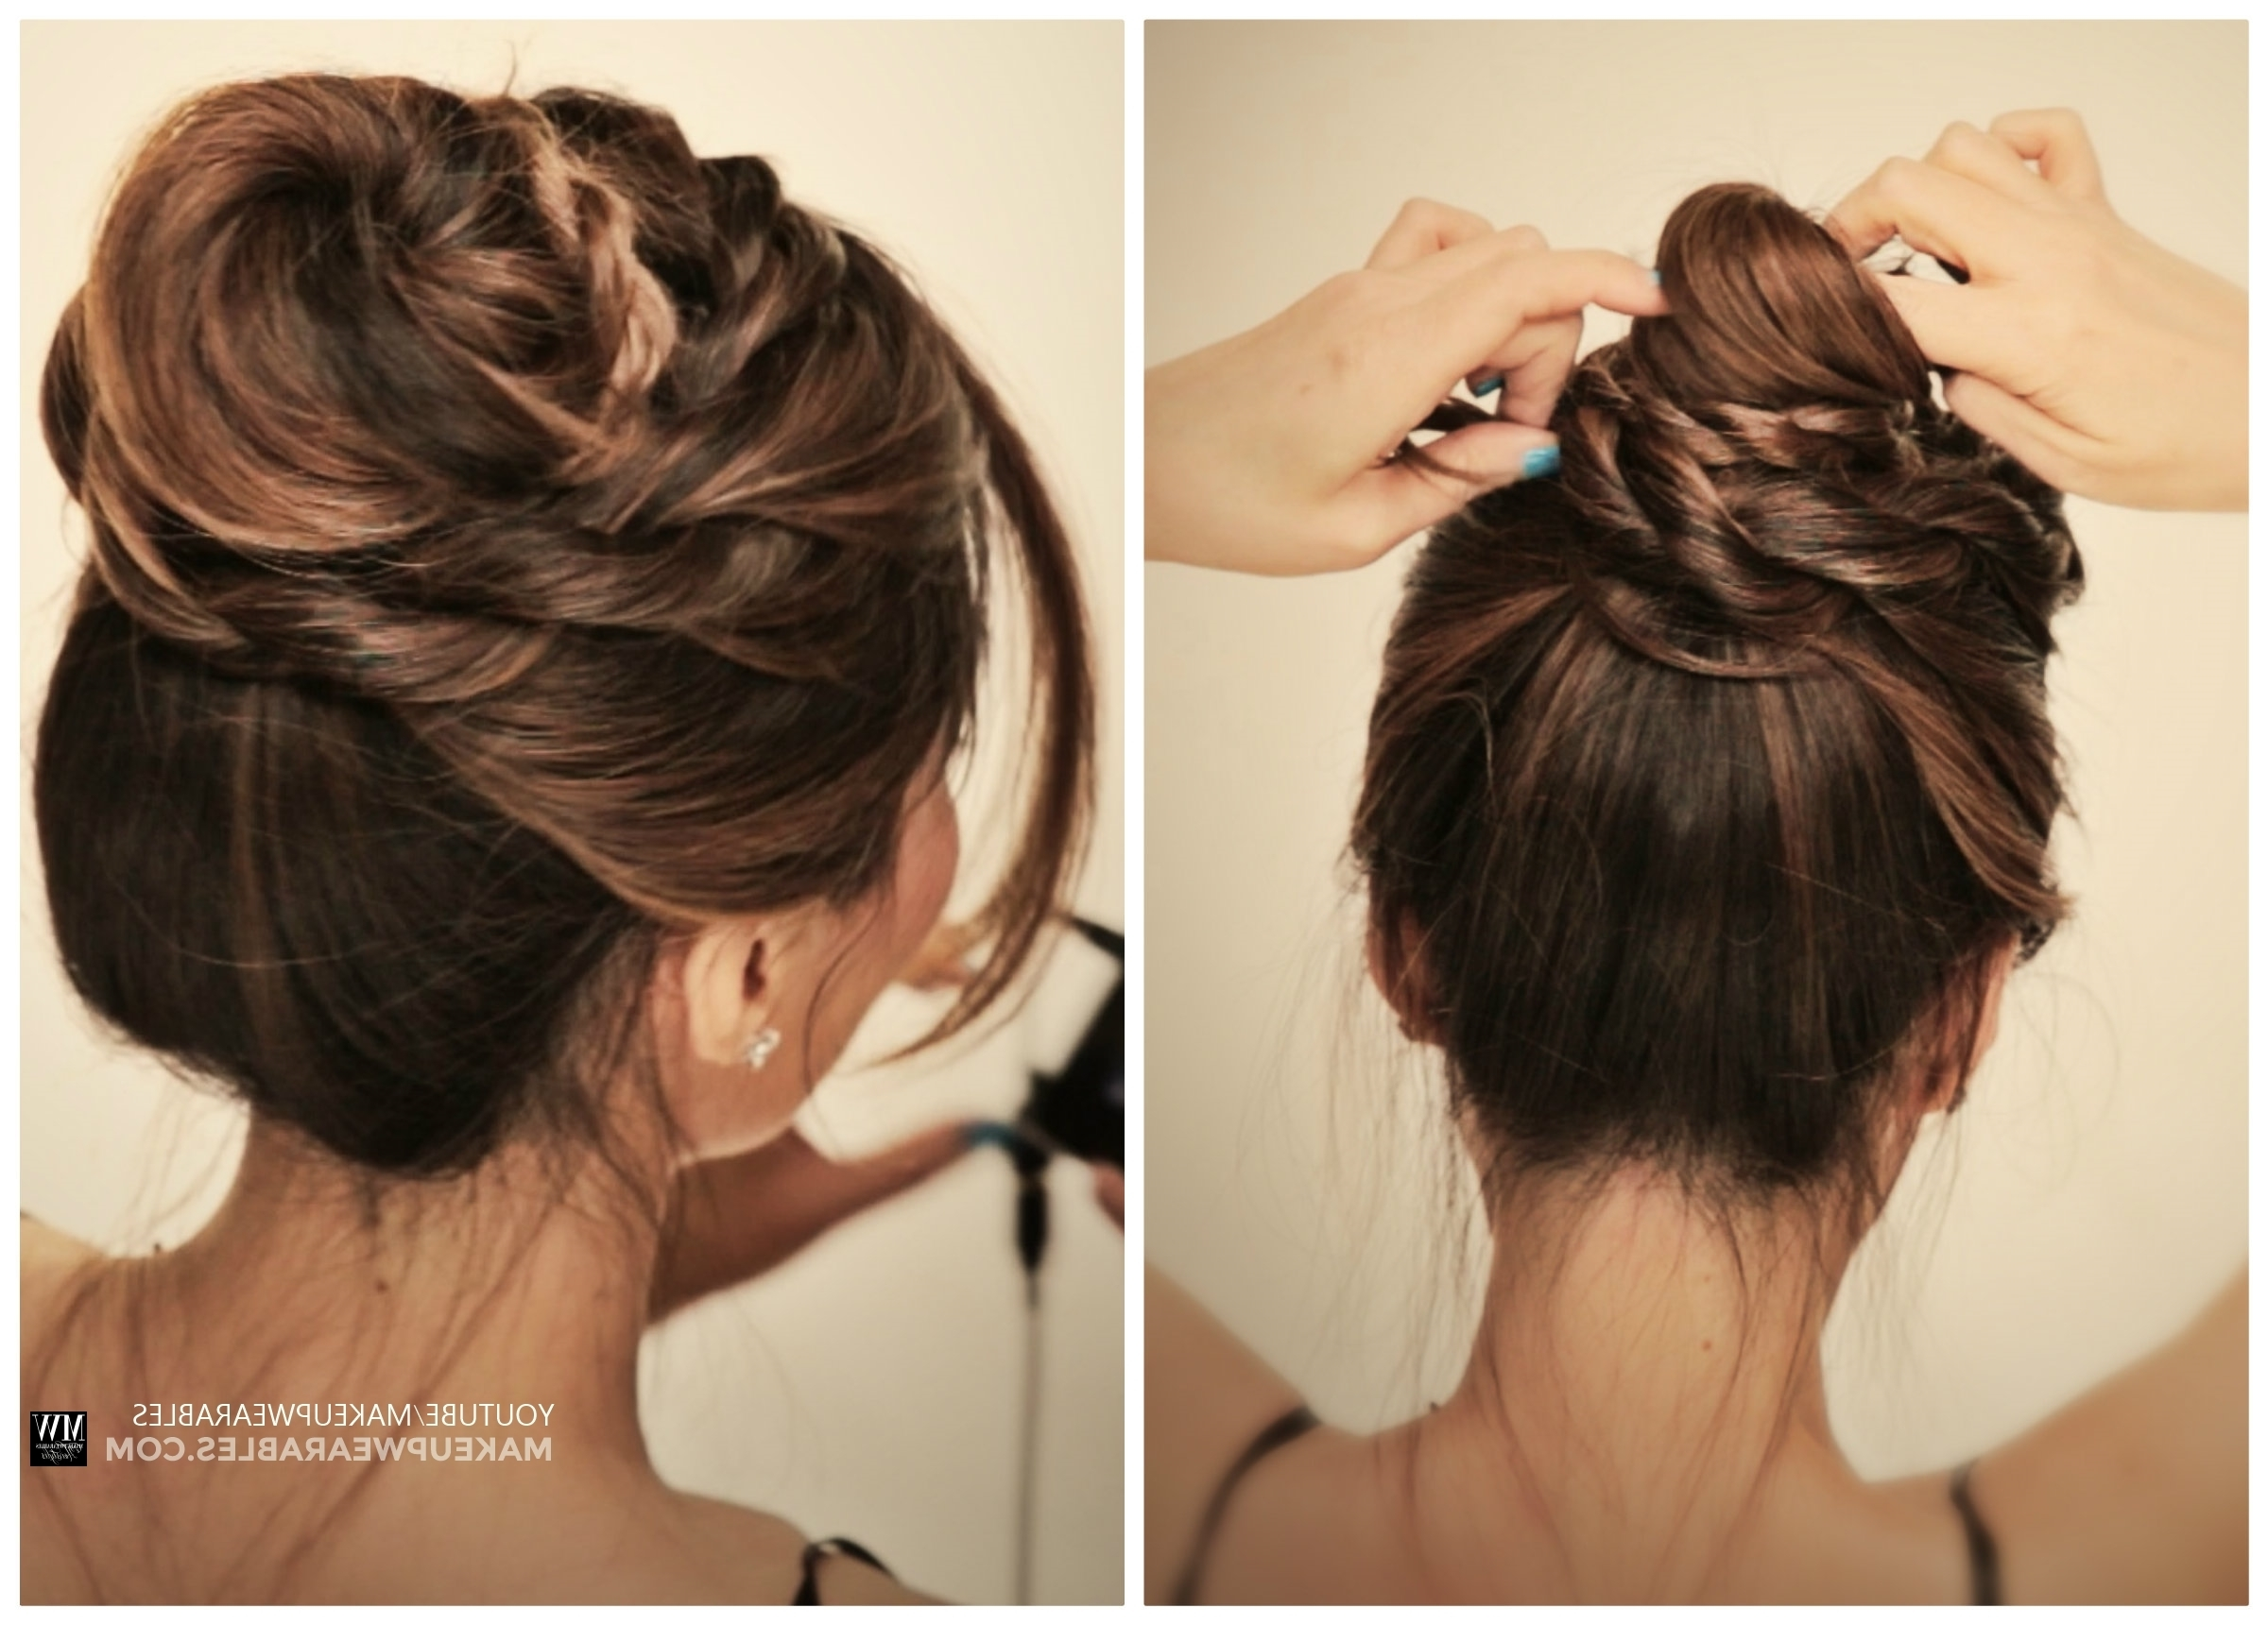 Cute Messy Bun Braids Ballerina Twisted Updo Hairstyle | Medium Hair Within Updo Buns Hairstyles (View 13 of 15)